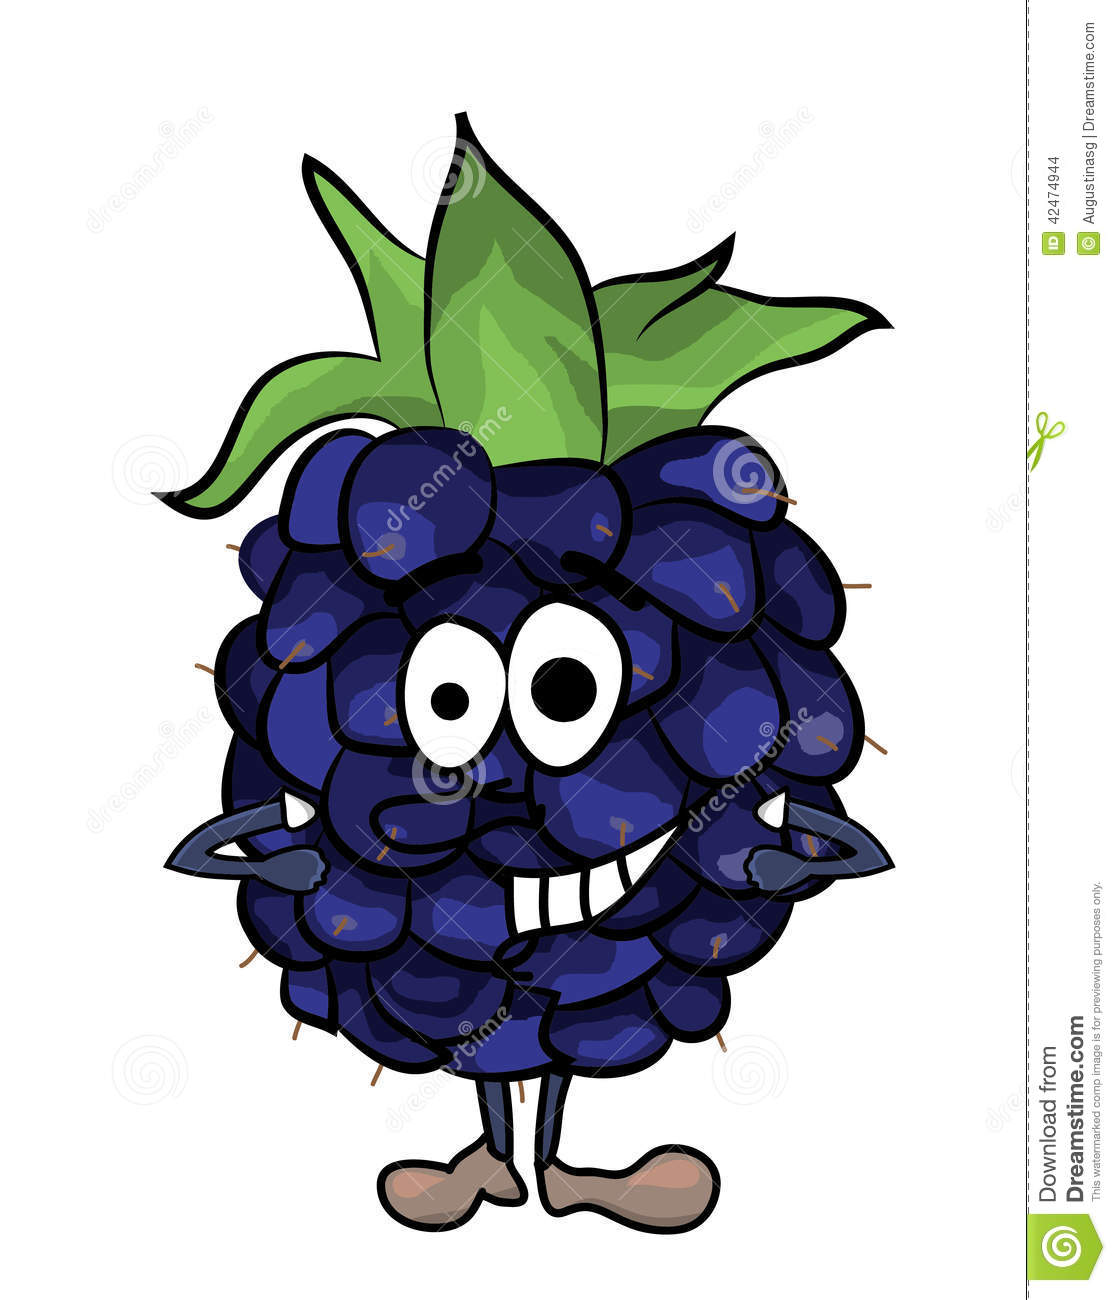 Blackberry-Fruchtkarikaturillustration